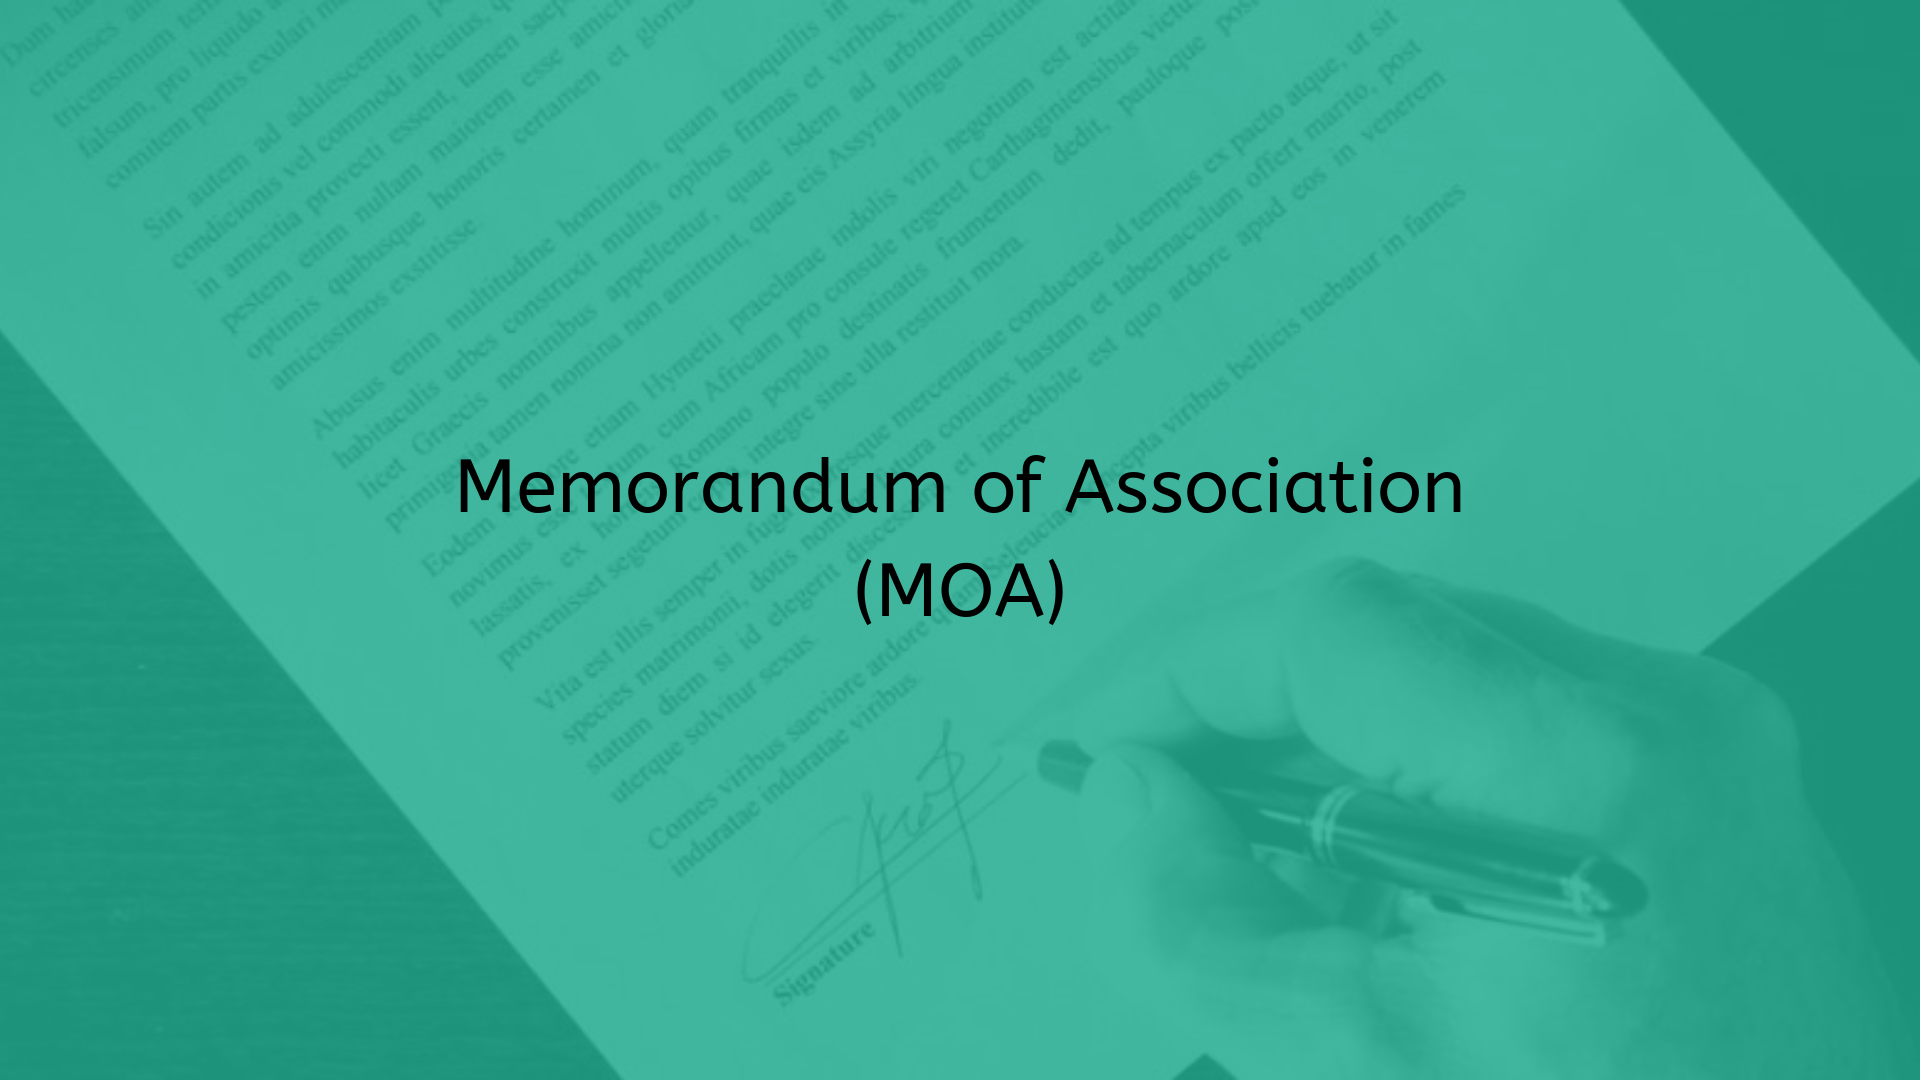 Memorandum of Association Under Section 4 of the Companies Act, 2013